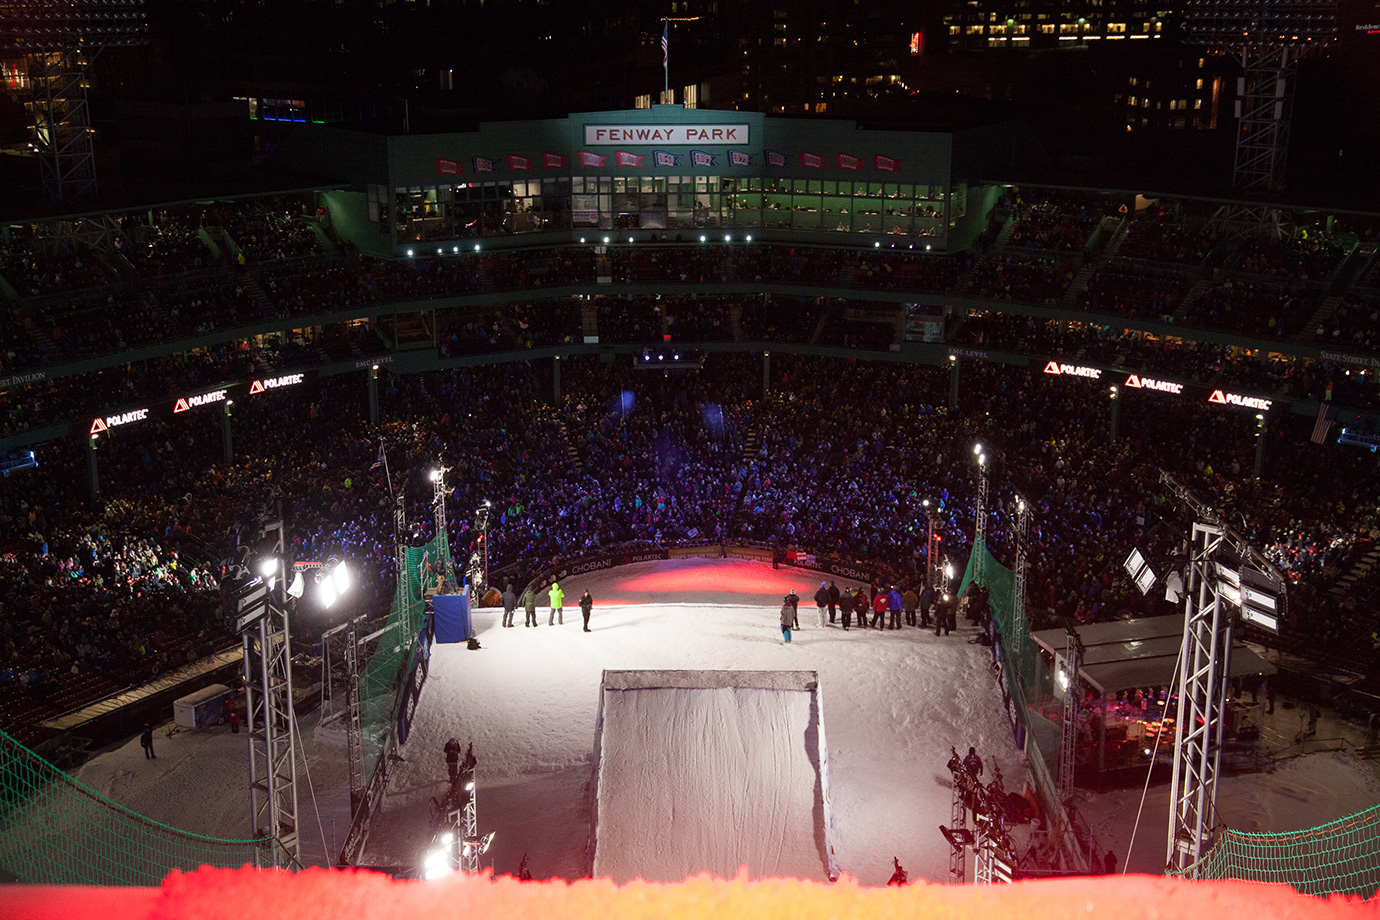 The view of the crowd at Fenway Park from the very top of the Big Air ramp